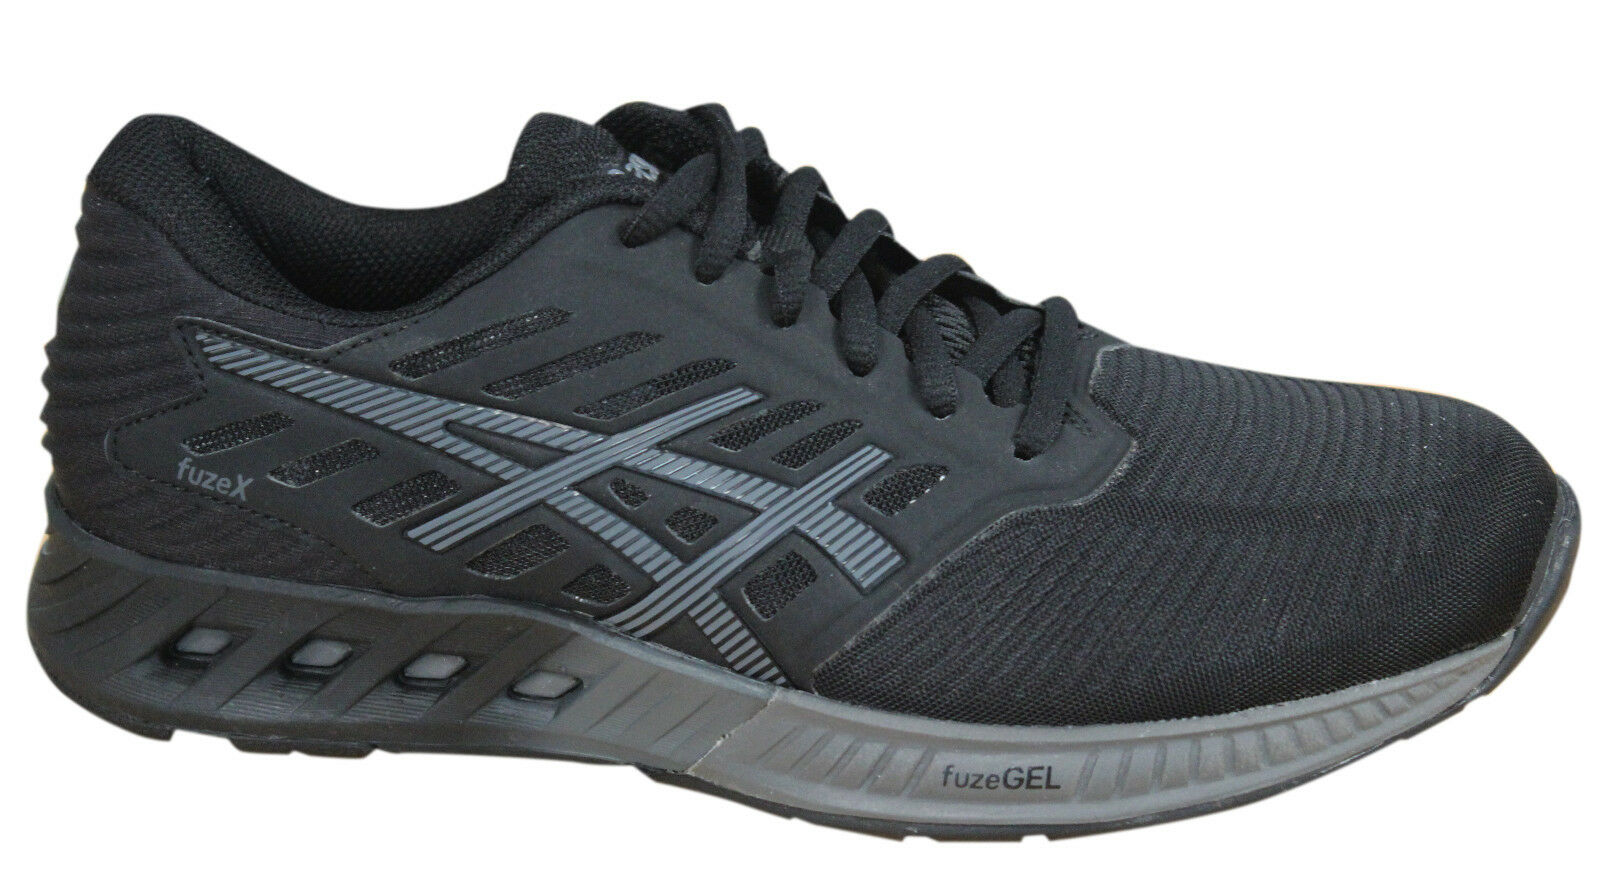 Asics FuzeX Womens Trainers Lace Up Shoes Black Synthetic Textile T689N 9096 D41 Comfortable and good-looking